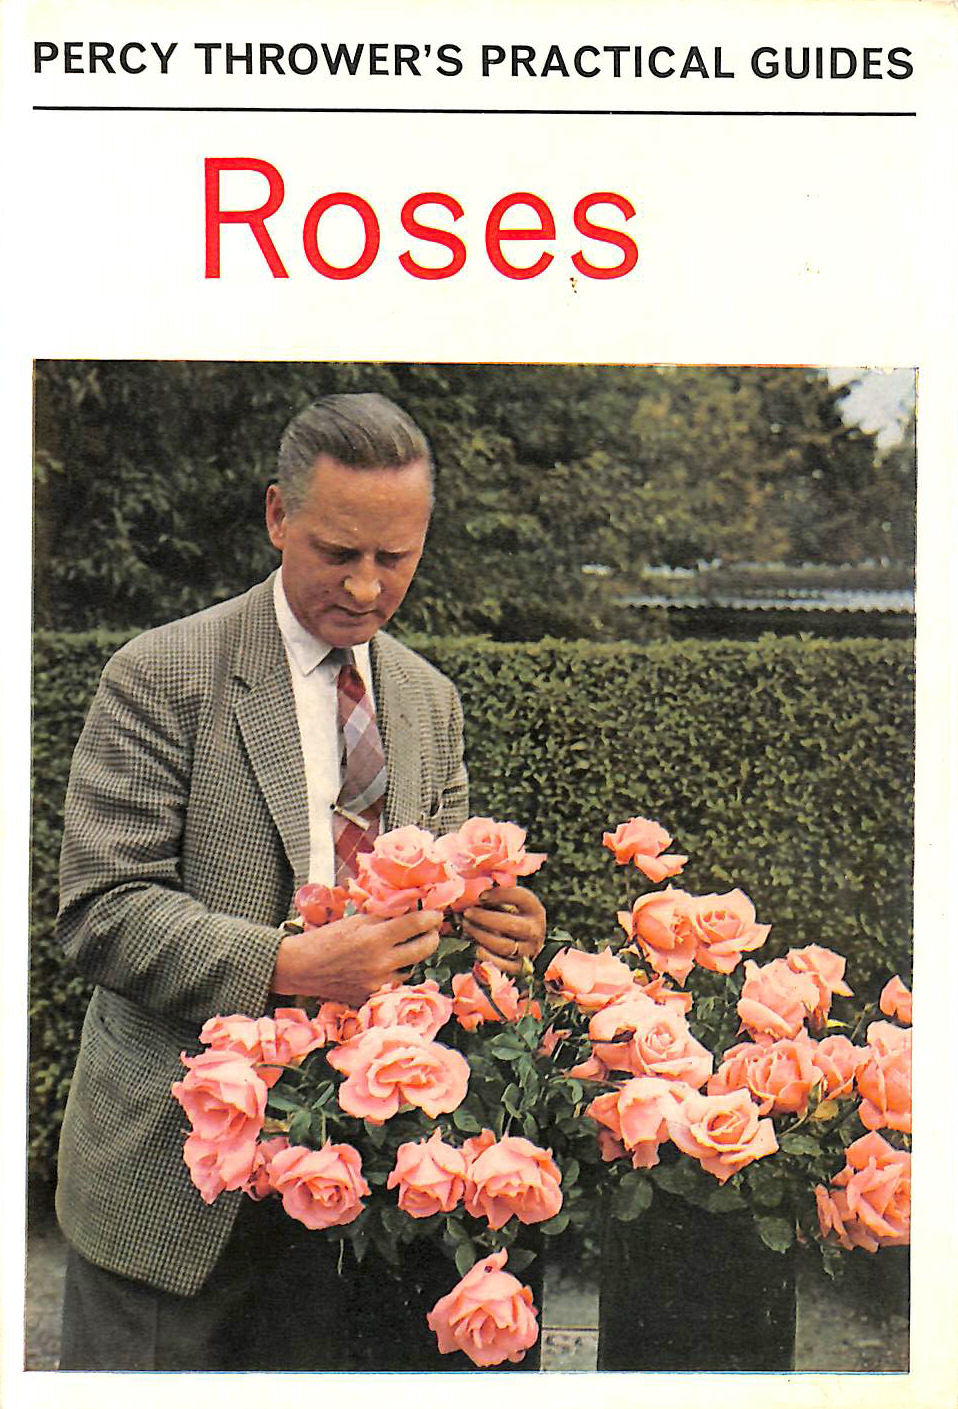 Image for Roses (Percy Thrower's Practical Gardening Guides)